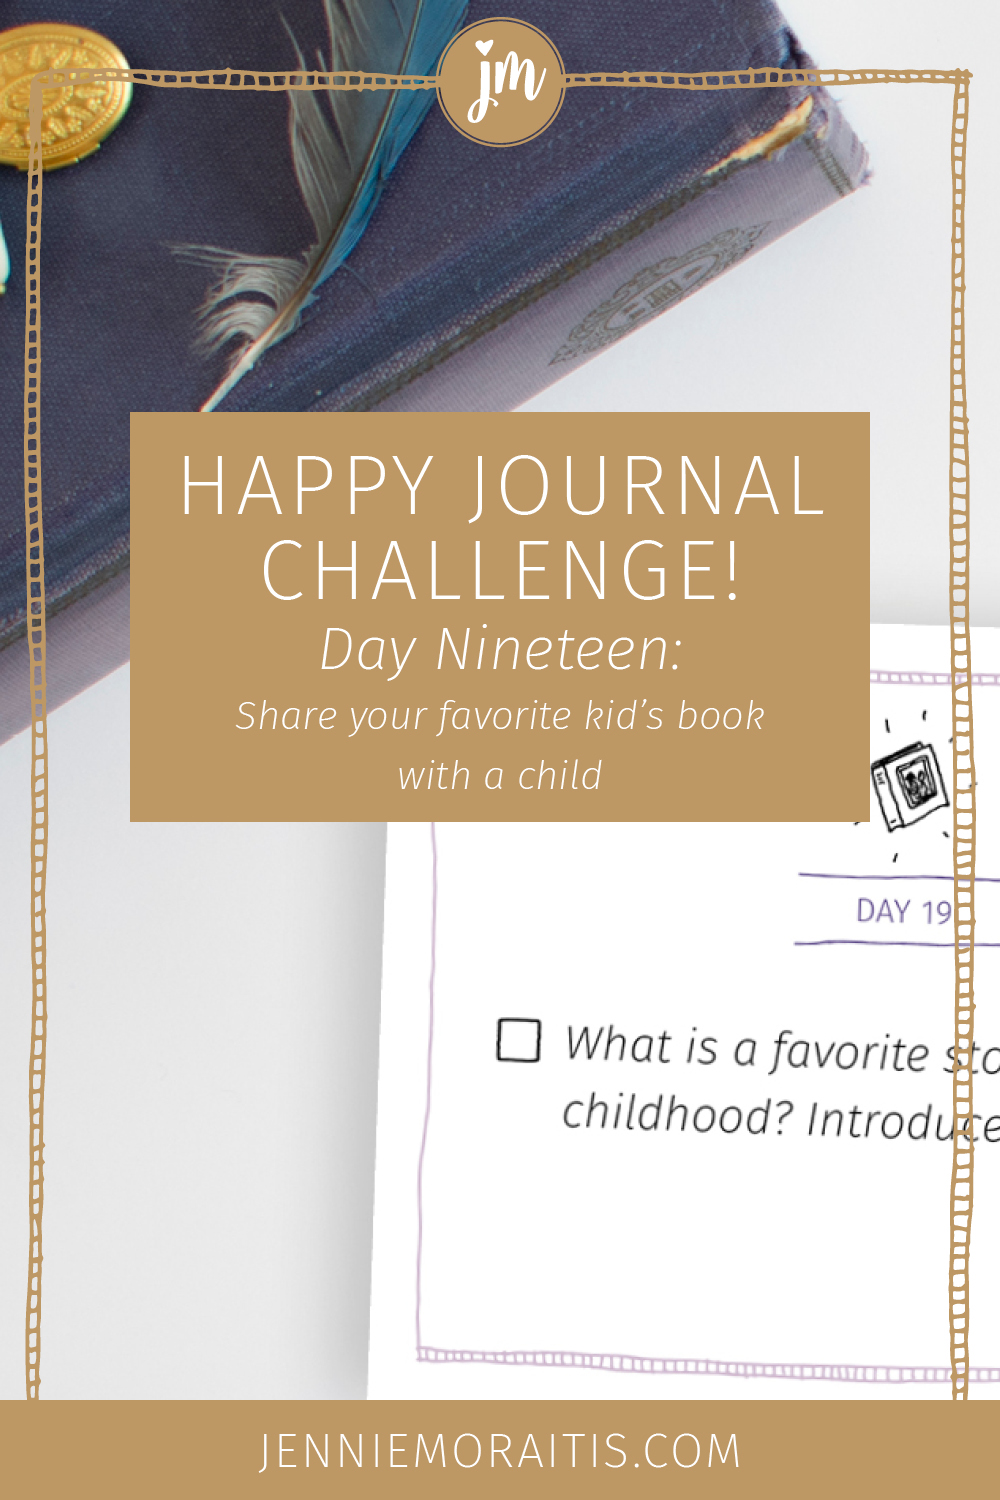 What's your favorite story from childhood? Today for the happy journal challenge, we are going to share that story with a child in our life. Time to pass on the love!